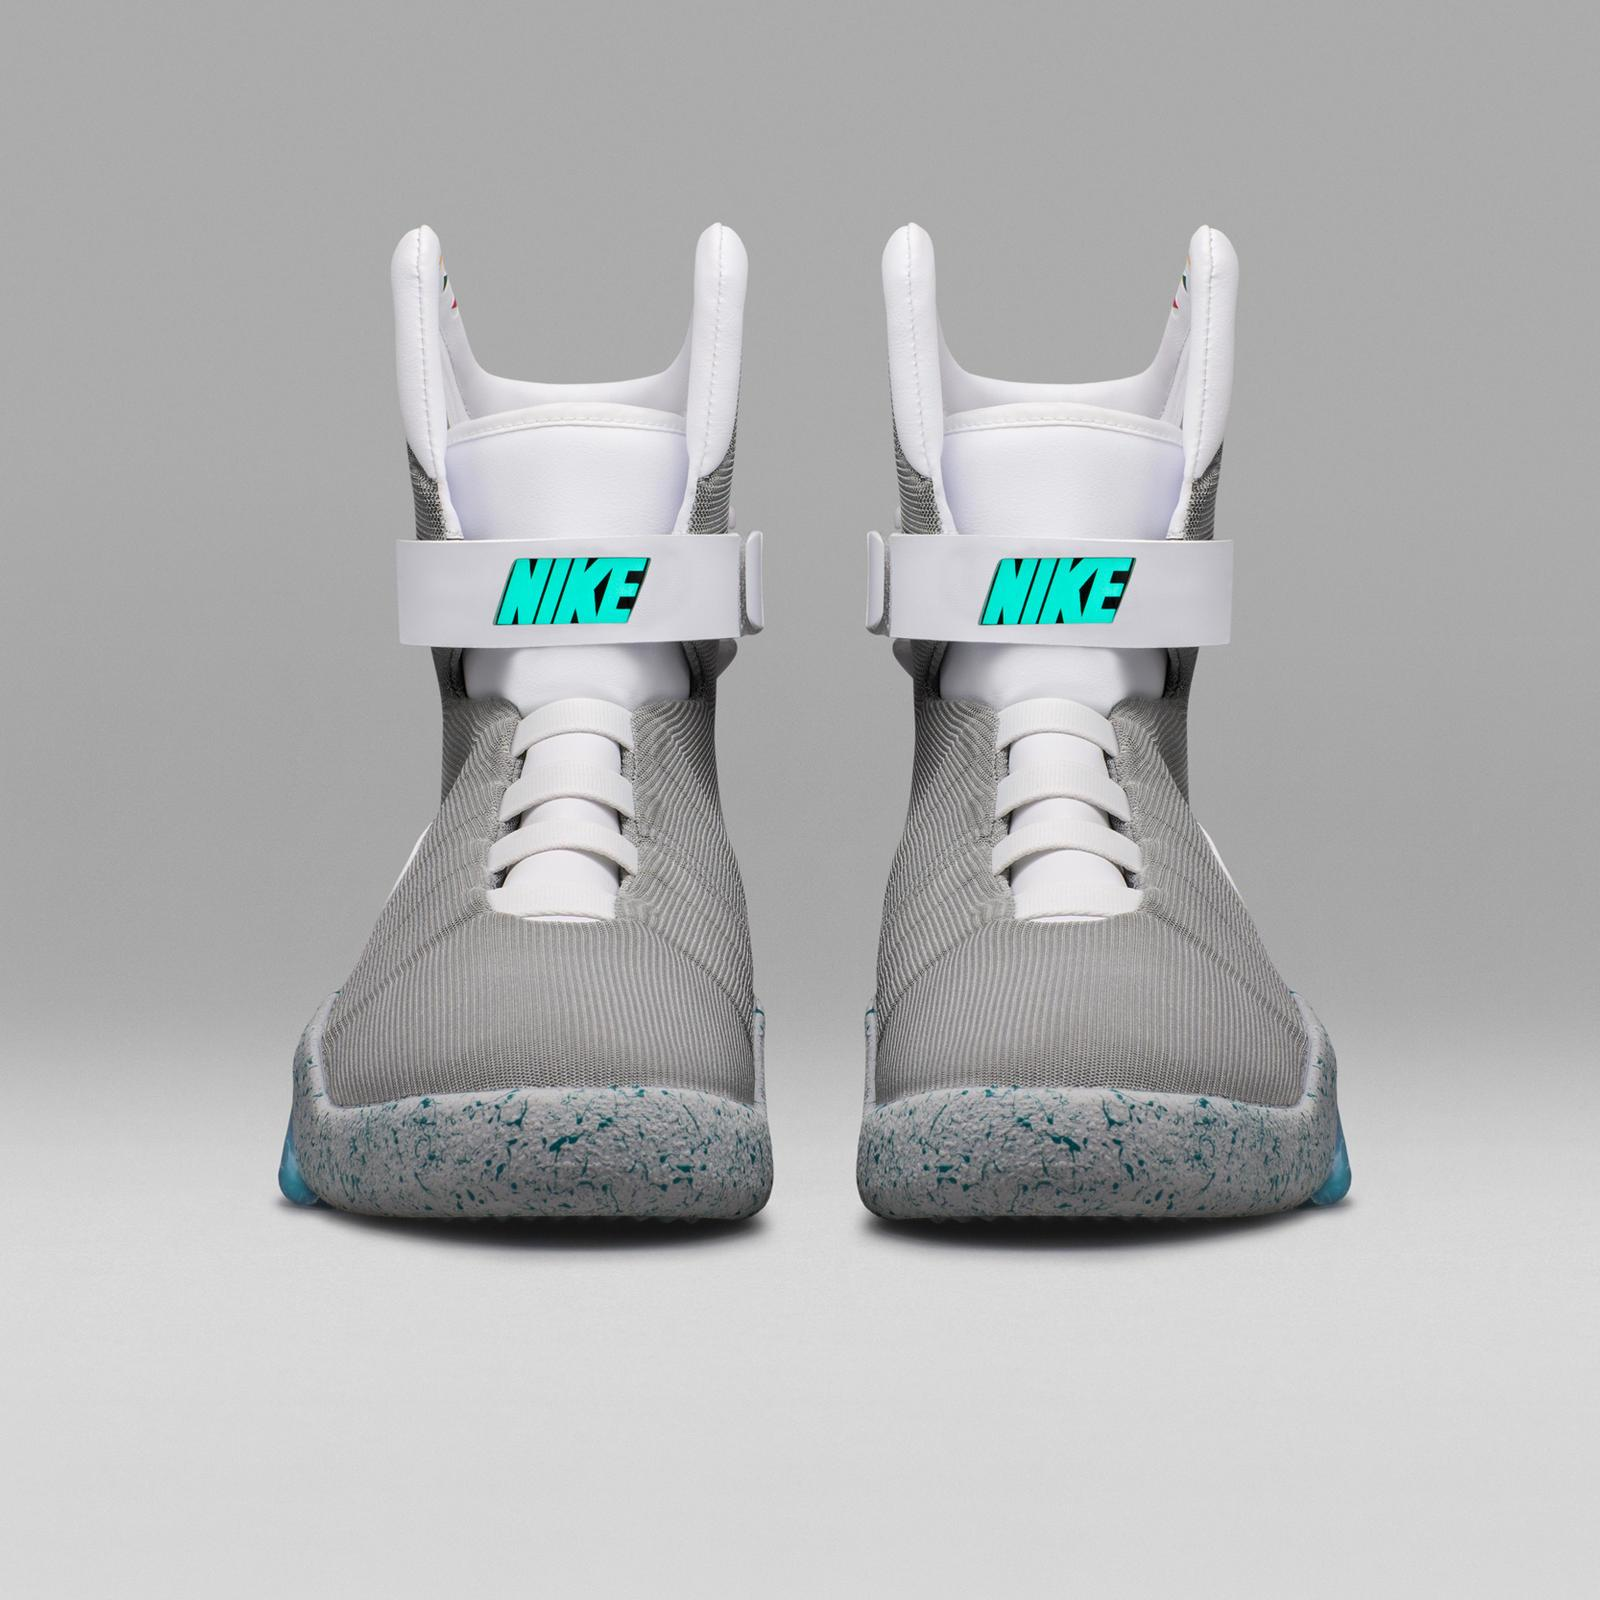 6c5f0dc37be07 How to score a pair of Nike's 'Back to the Future' self-lacing shoes